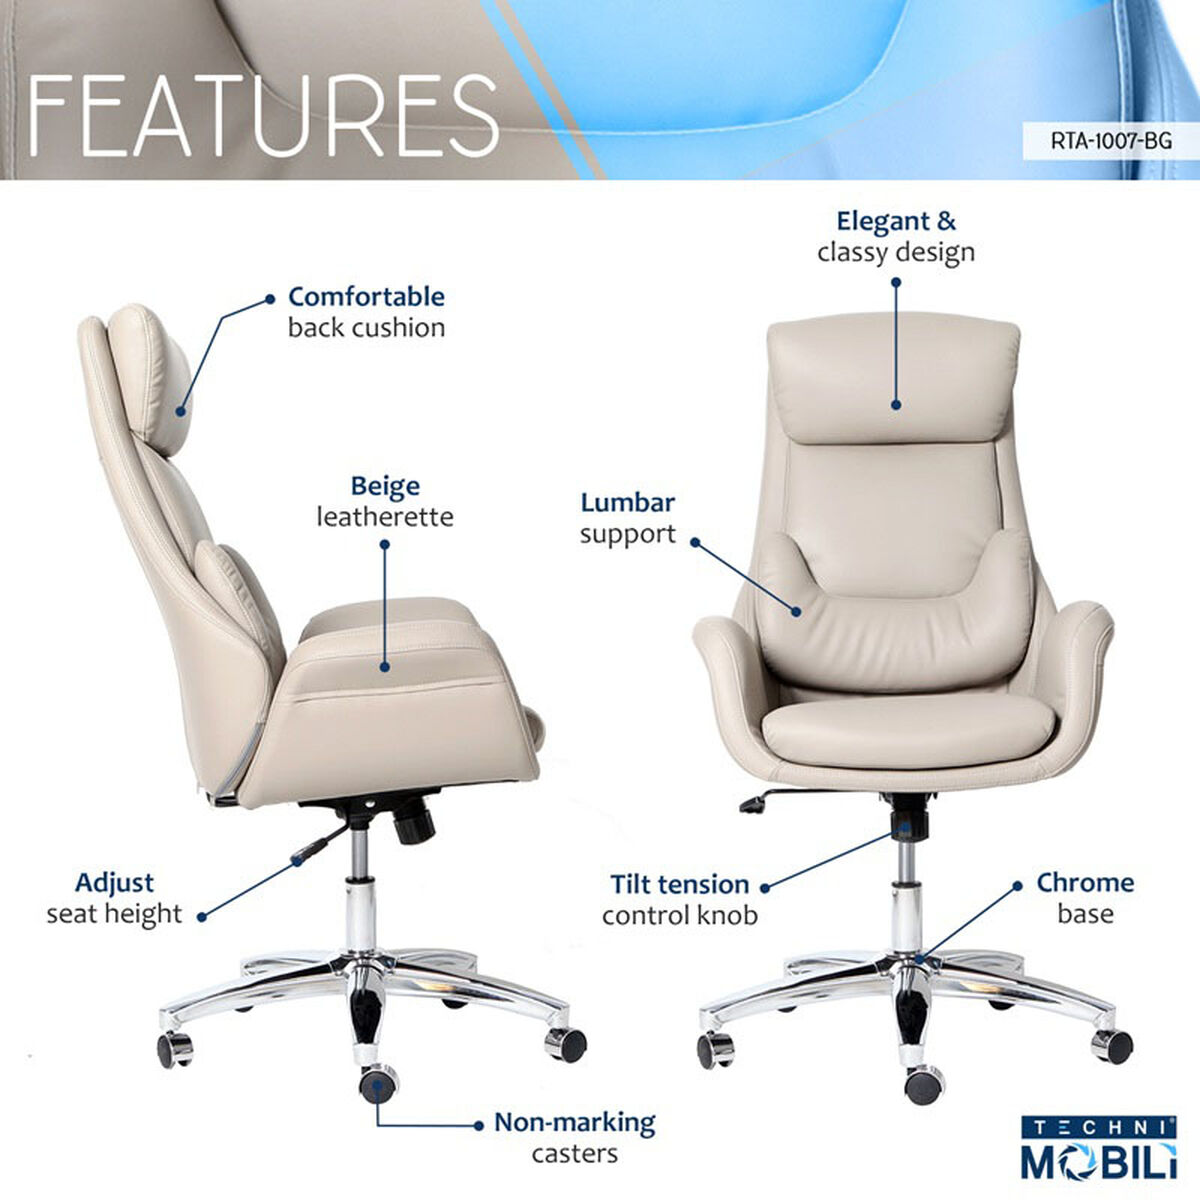 Our Techni Mobili Best Ergonomic Home Office Chair With Lumbar Support Beige Is On